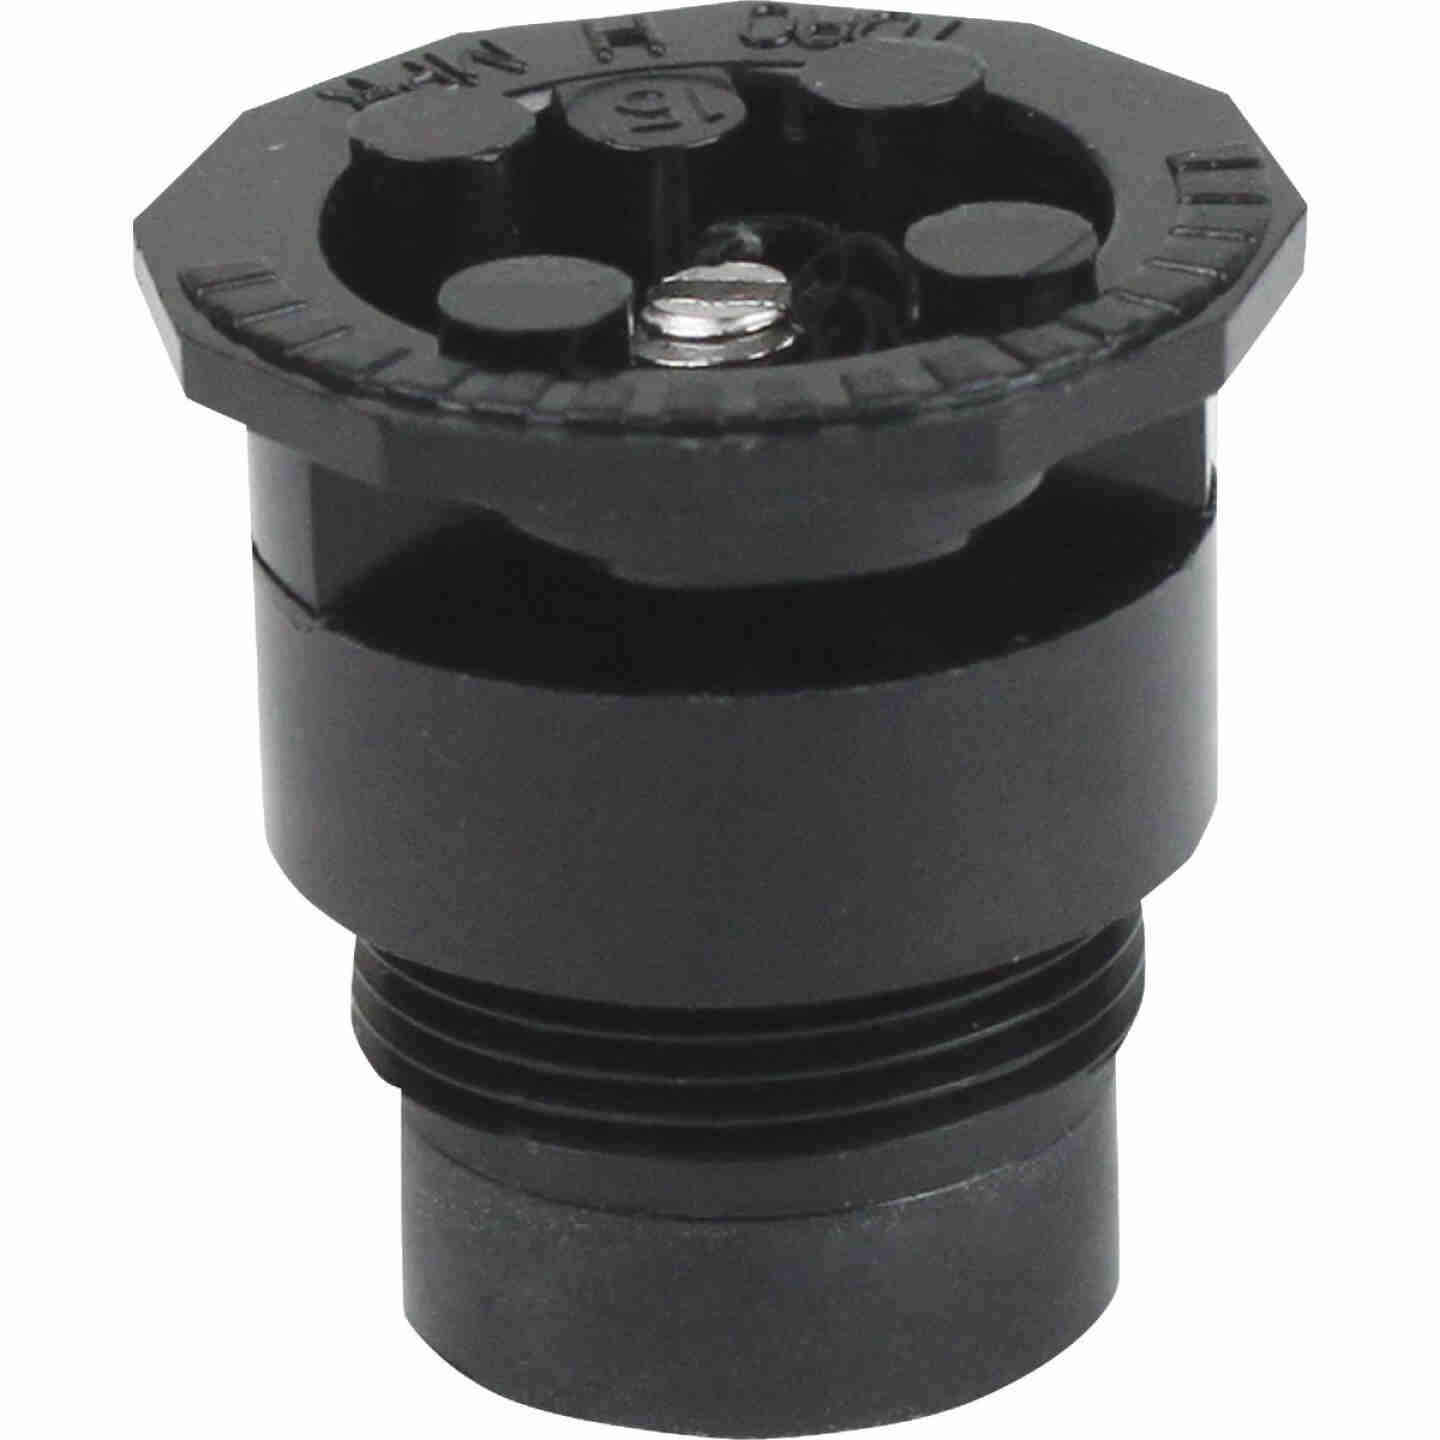 Toro Half Circle 15 Ft. Replacement Nozzle Image 1